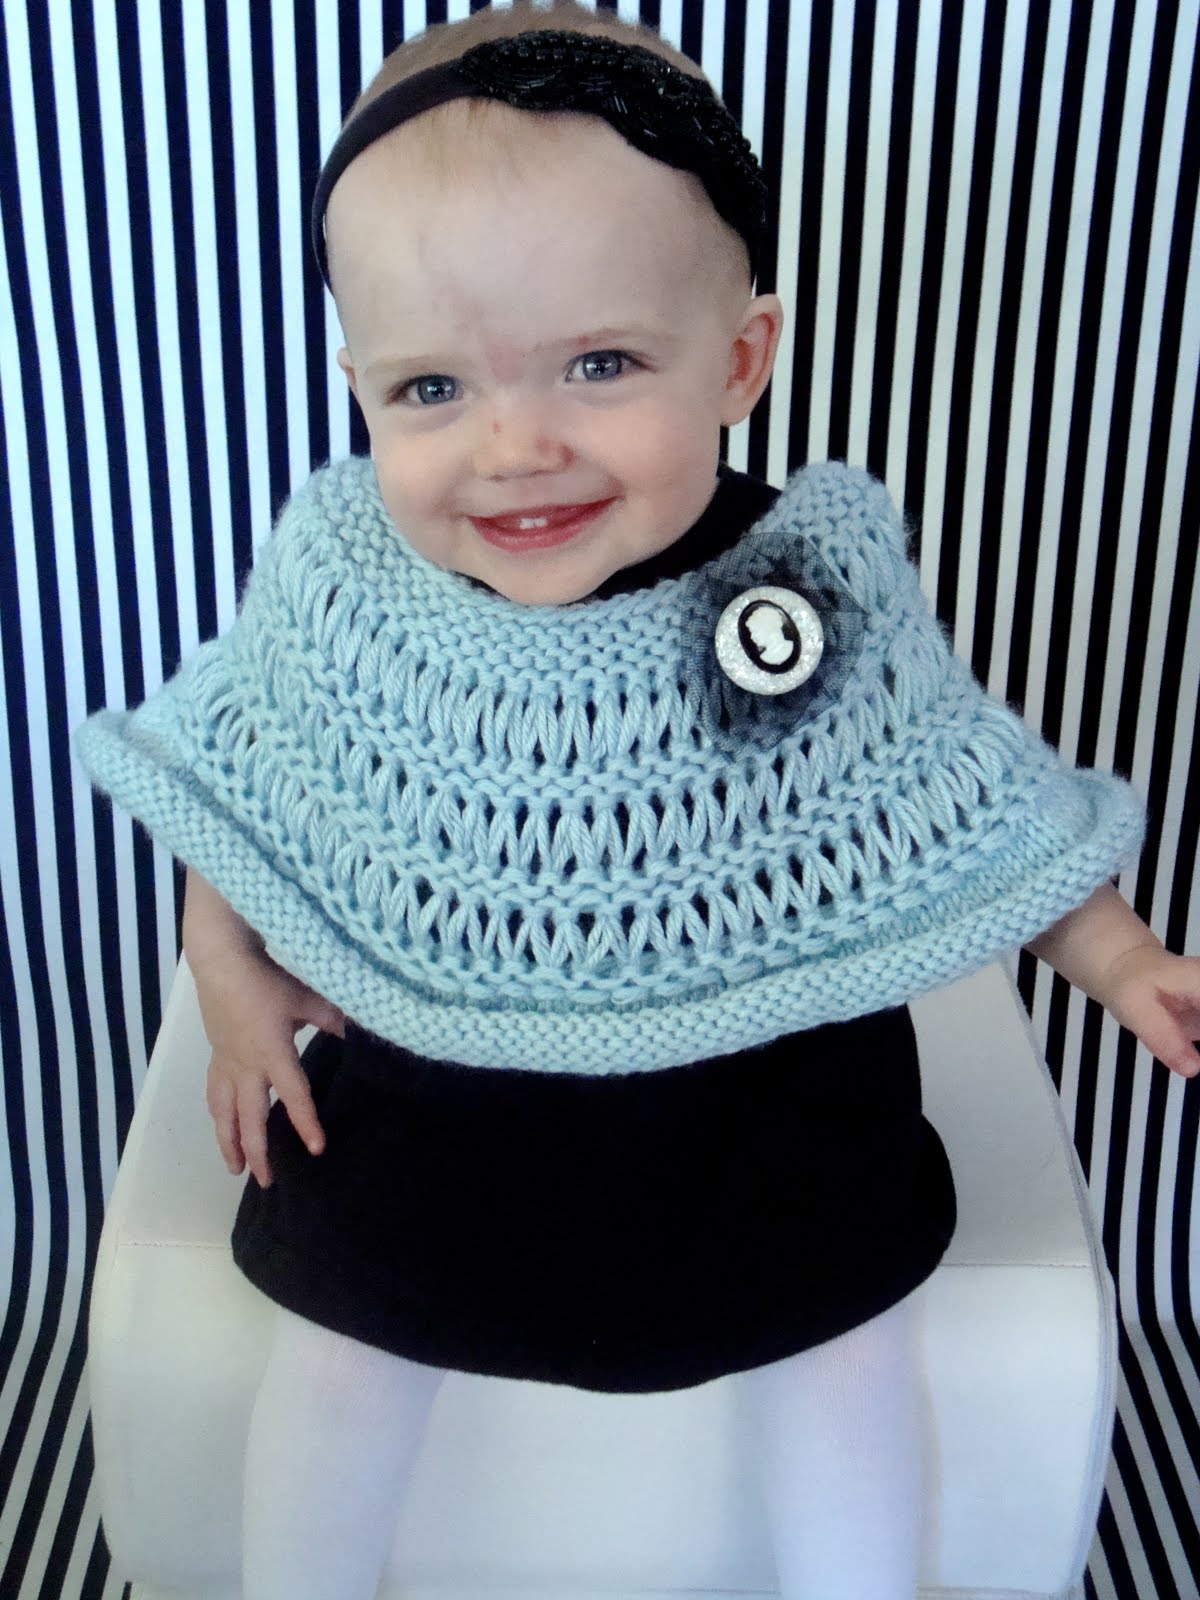 Sophie Poncho On Daily Knitter Vickie Howell